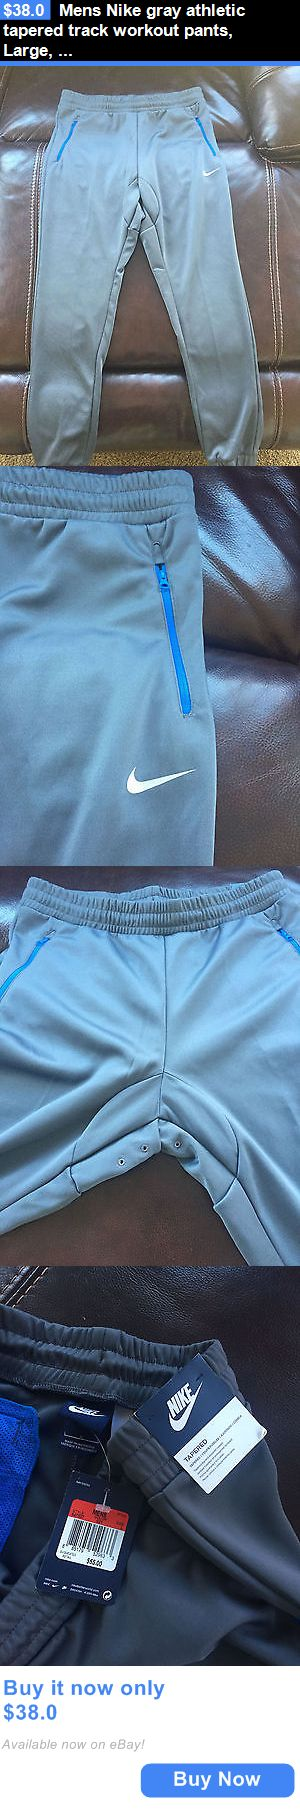 Men Athletics: Mens Nike Gray Athletic Tapered Track Workout Pants, Large, New BUY IT NOW ONLY: $38.0